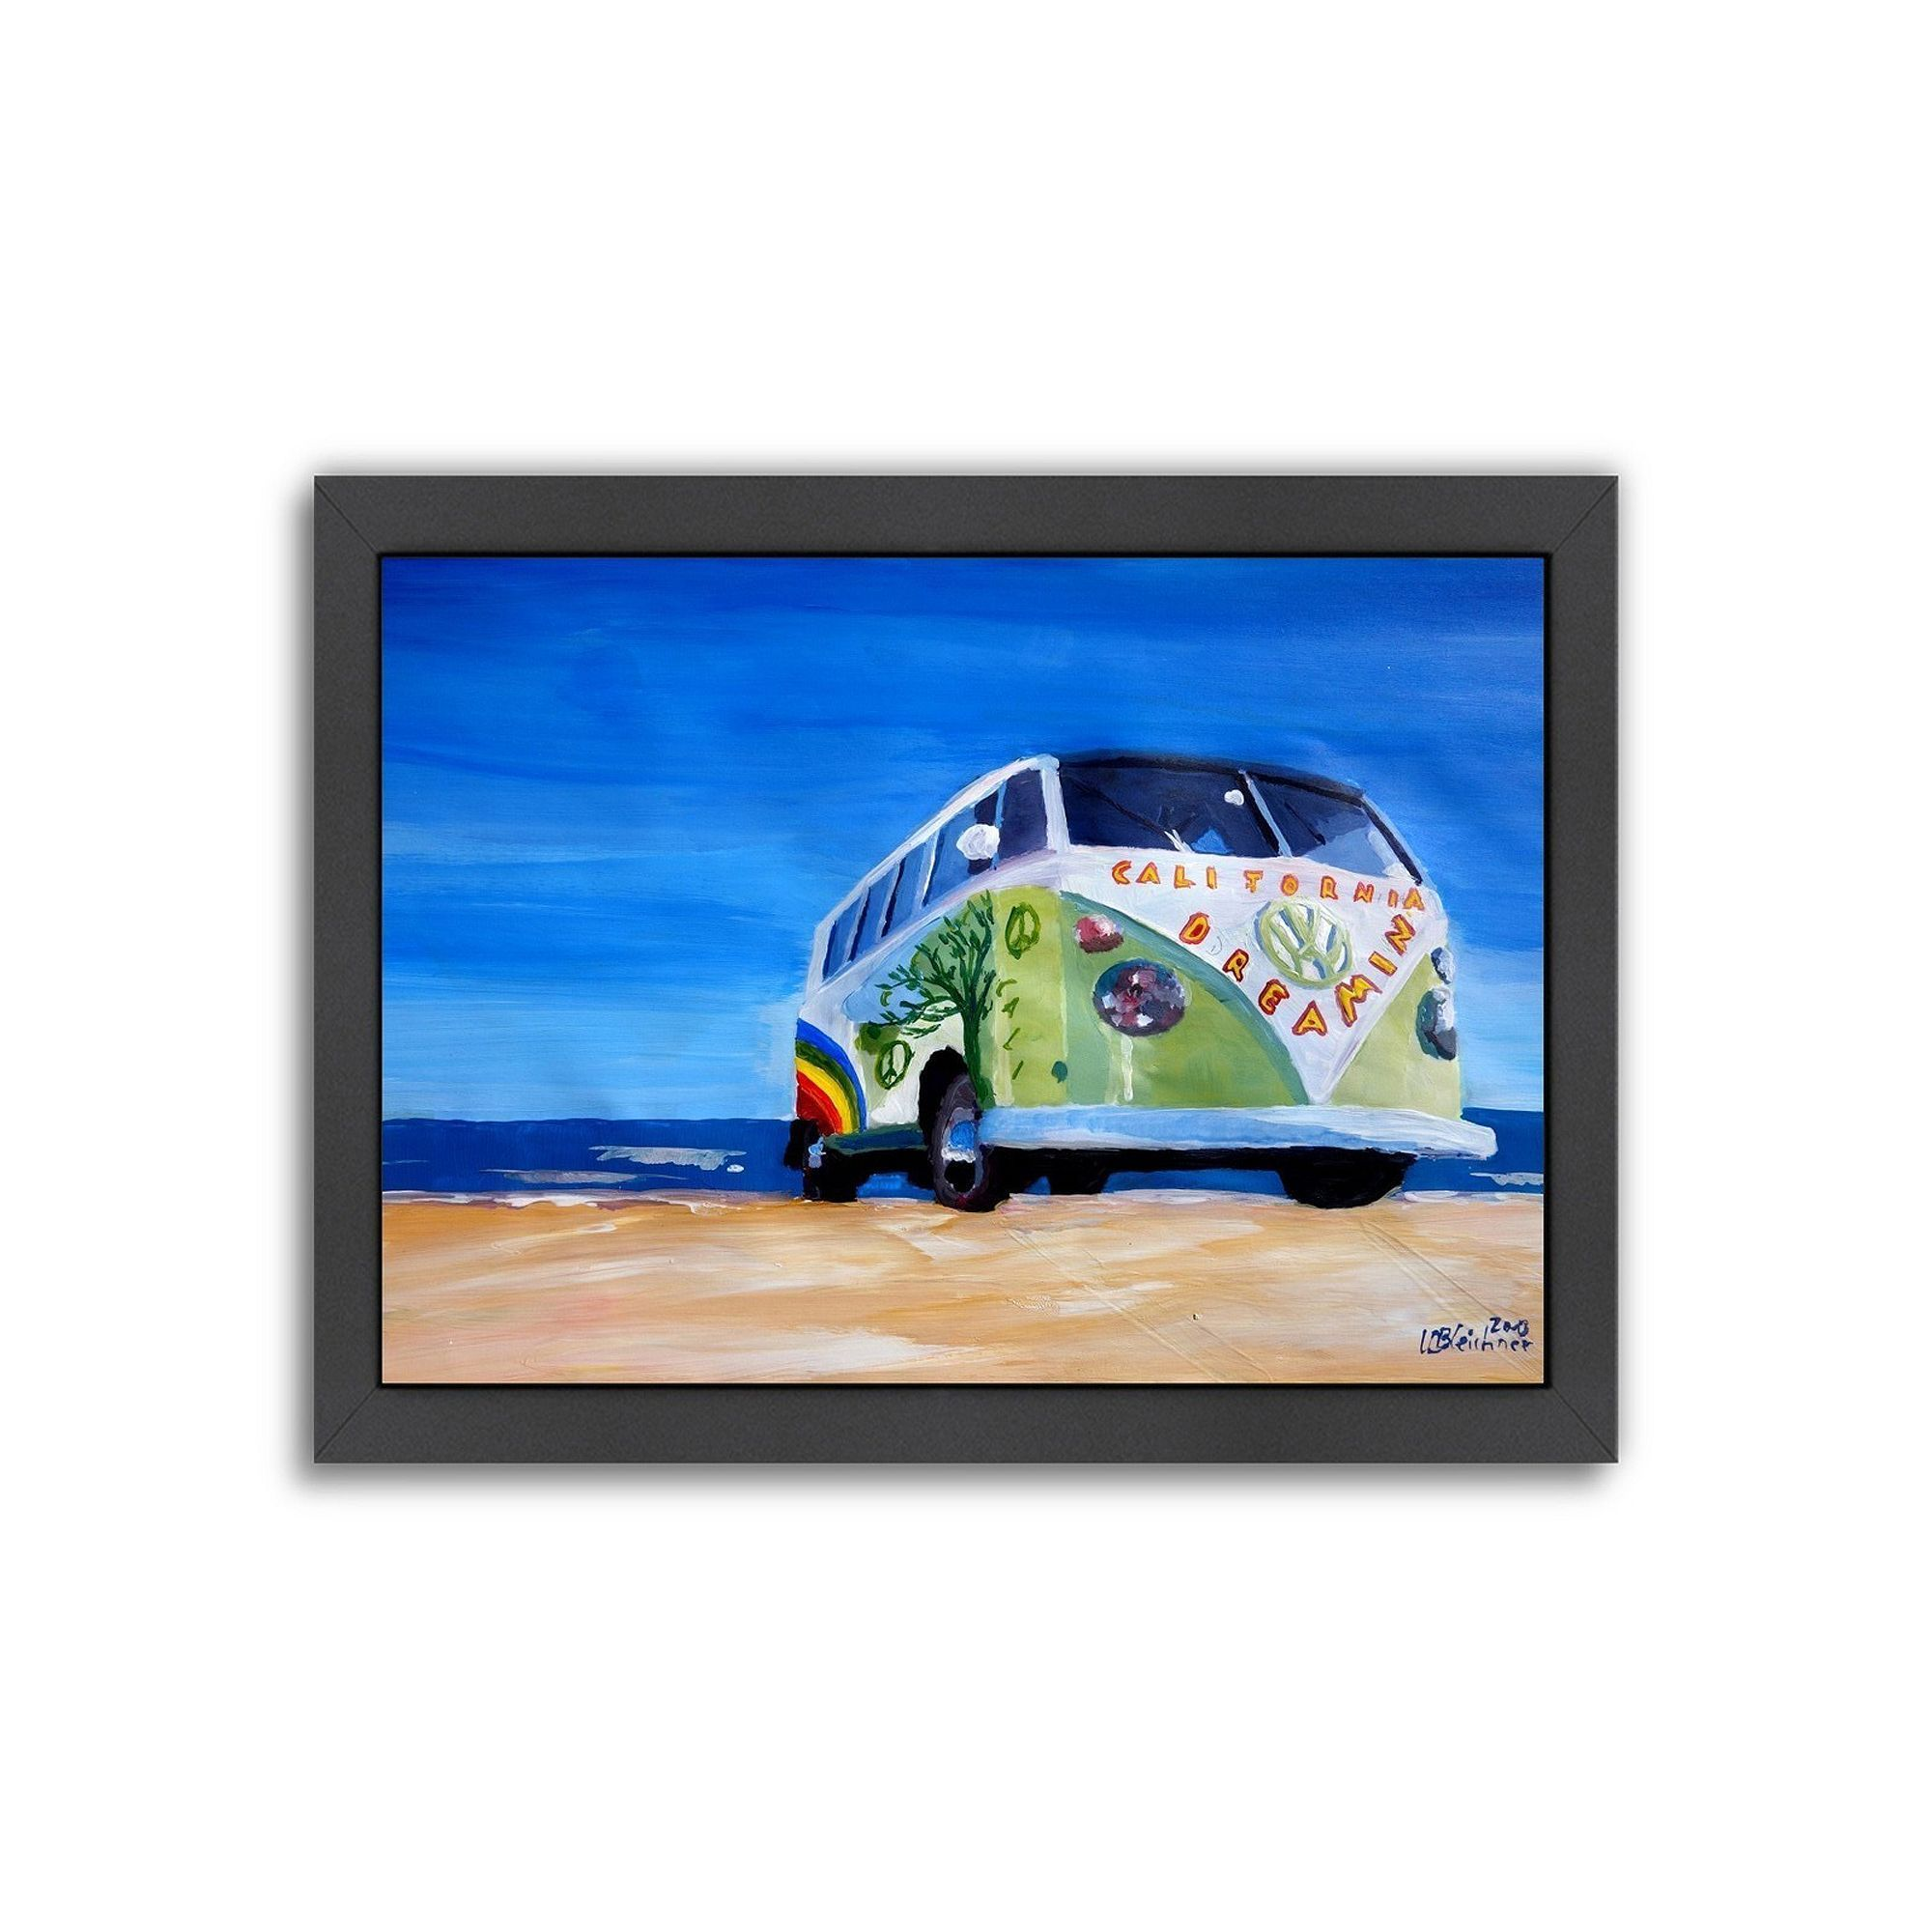 Americanflat the california dreaming surf bus framed wall art